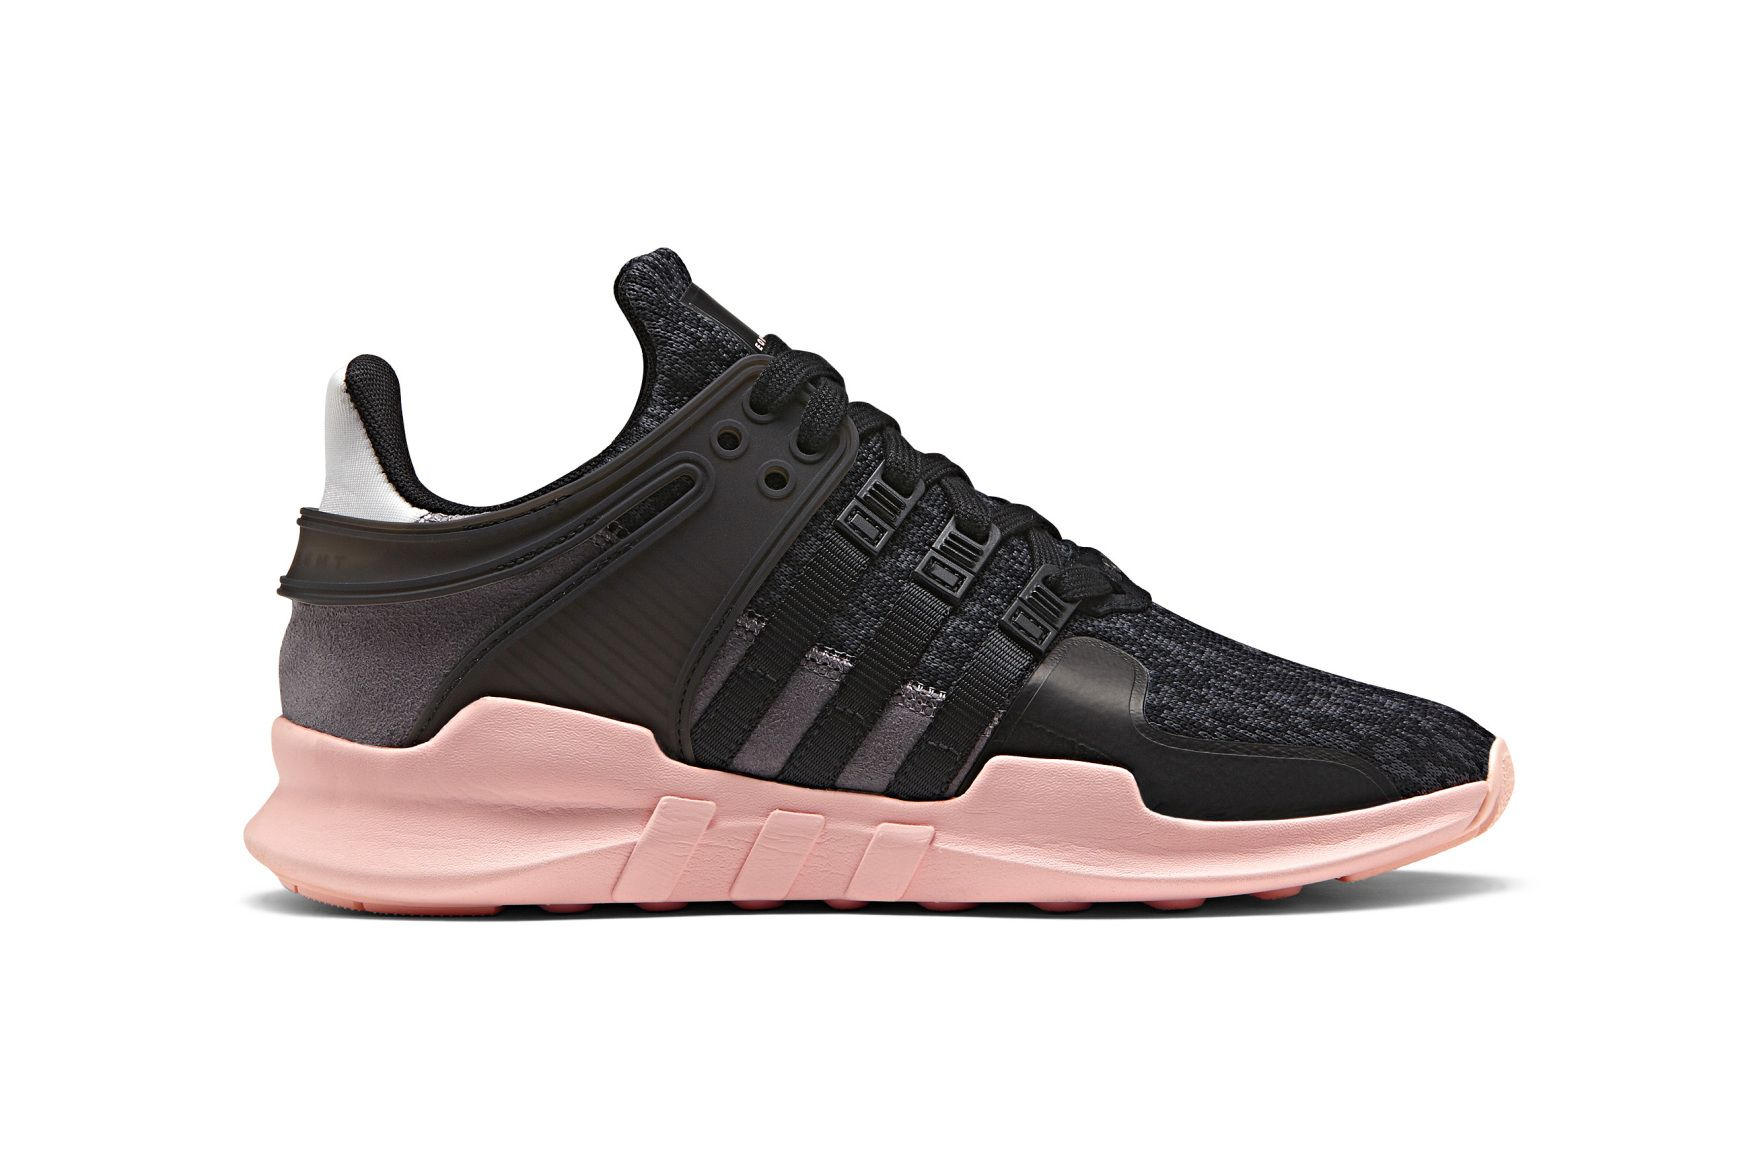 Exclusive Feminine Sneakers - These adidas Shoes are Part of a  Spring/Summer Women's-Only Line (GALLERY)